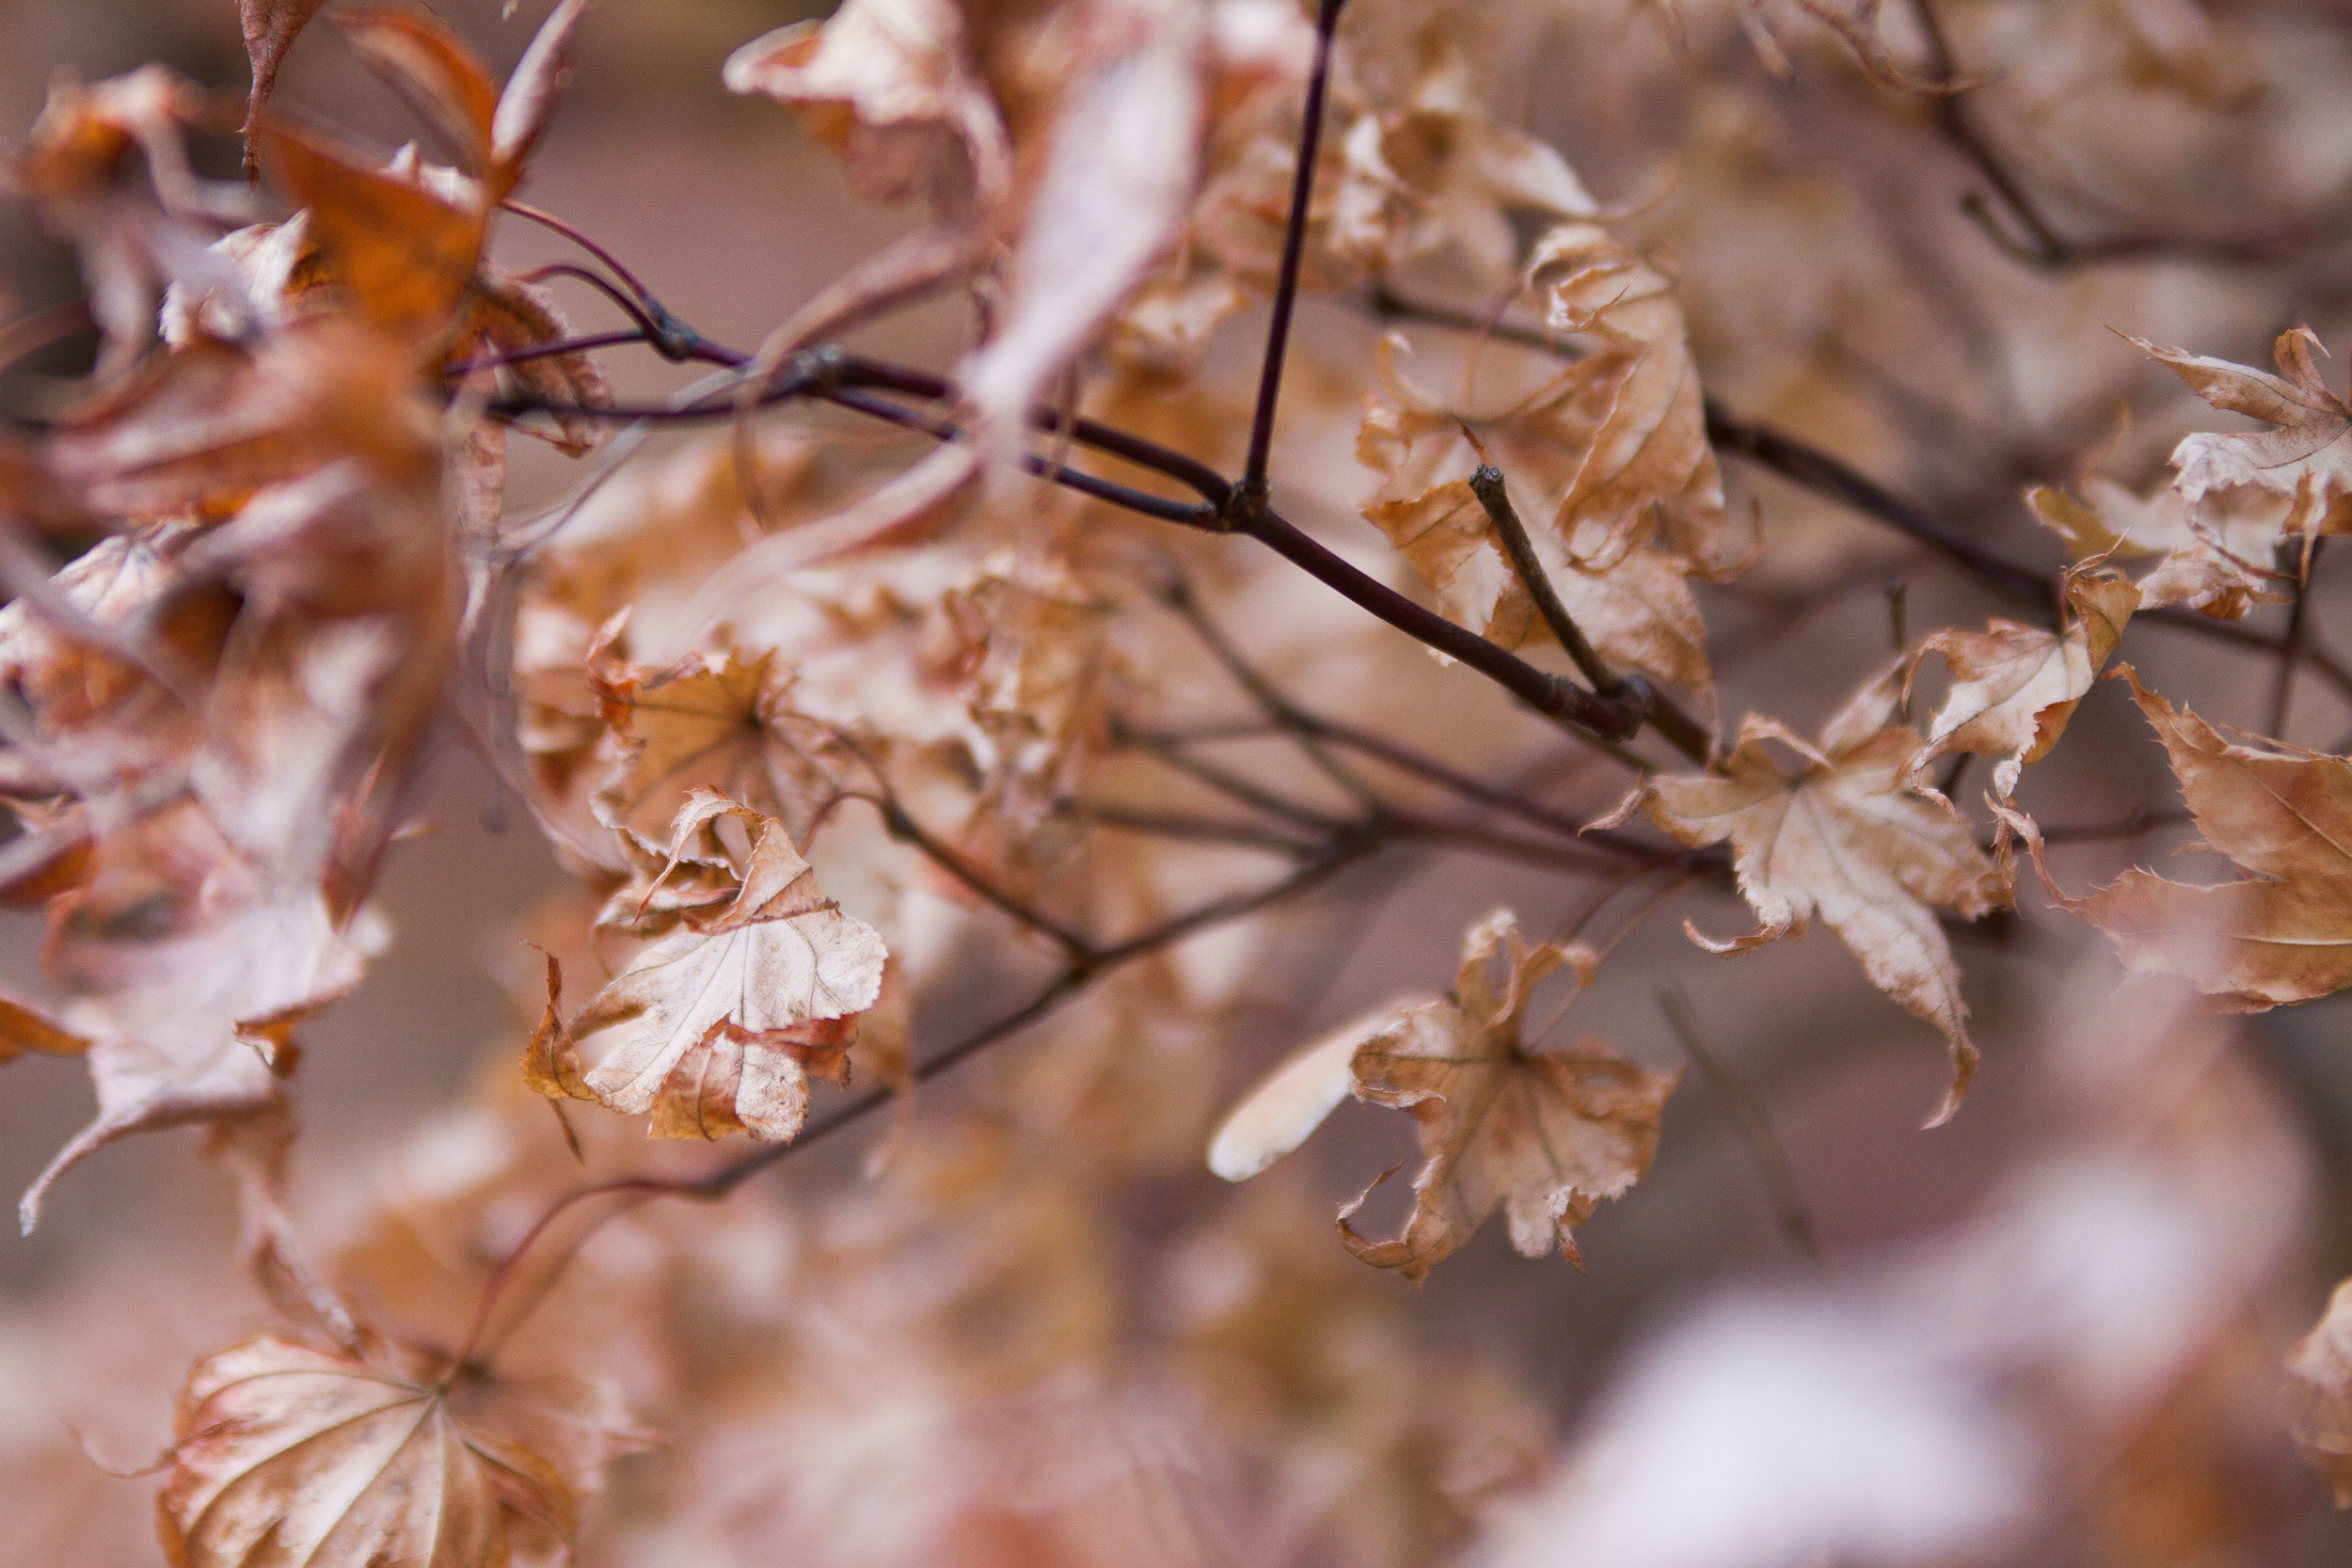 Even though these leaves are dead, I still think they have a wonderful elegance. I think it's amazing how they can make dying look sobeautiful.